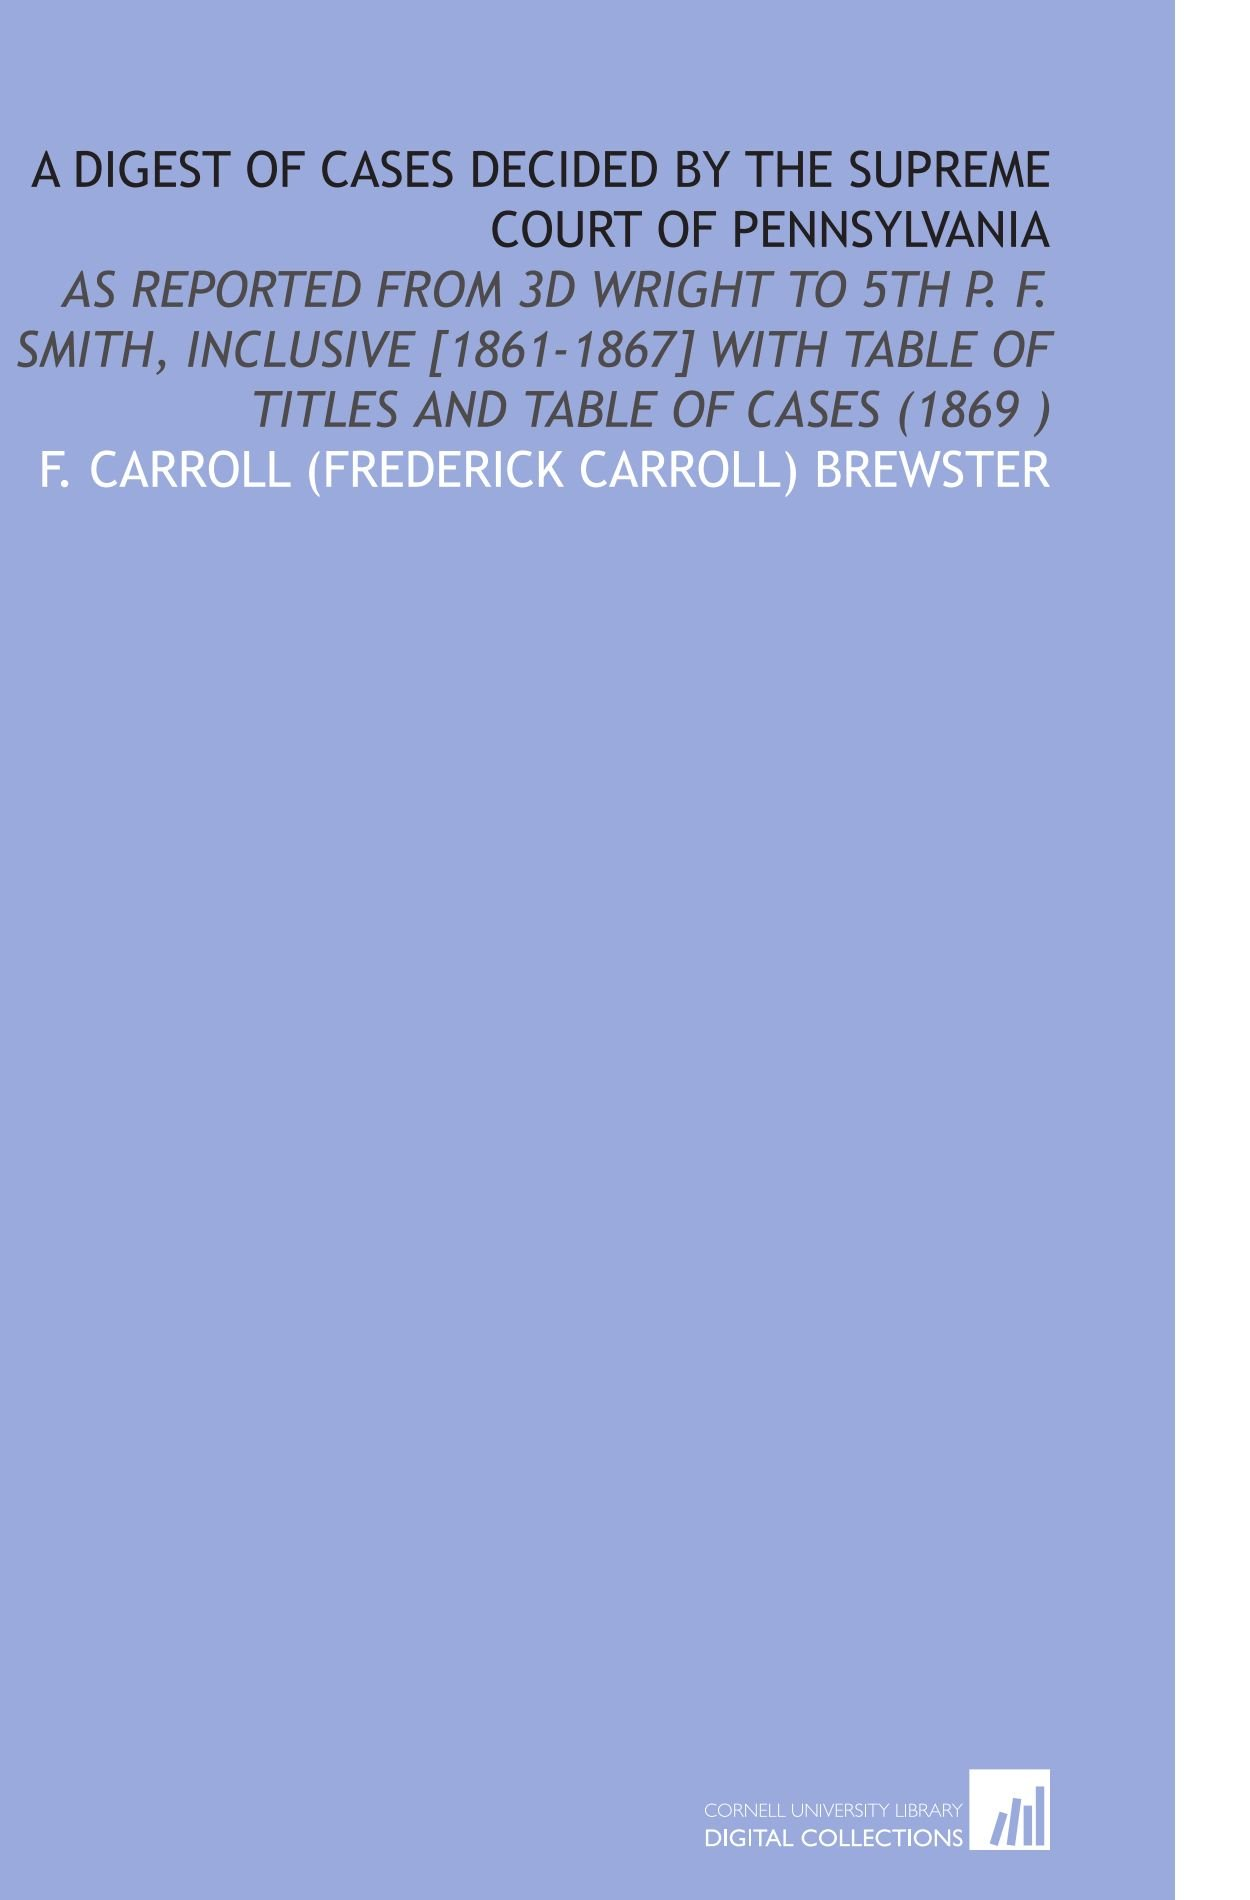 Download A Digest of Cases Decided by the Supreme Court of Pennsylvania: As Reported From 3d Wright to 5th P. F. Smith, Inclusive [1861-1867] With Table of Titles and Table of Cases (1869) ebook